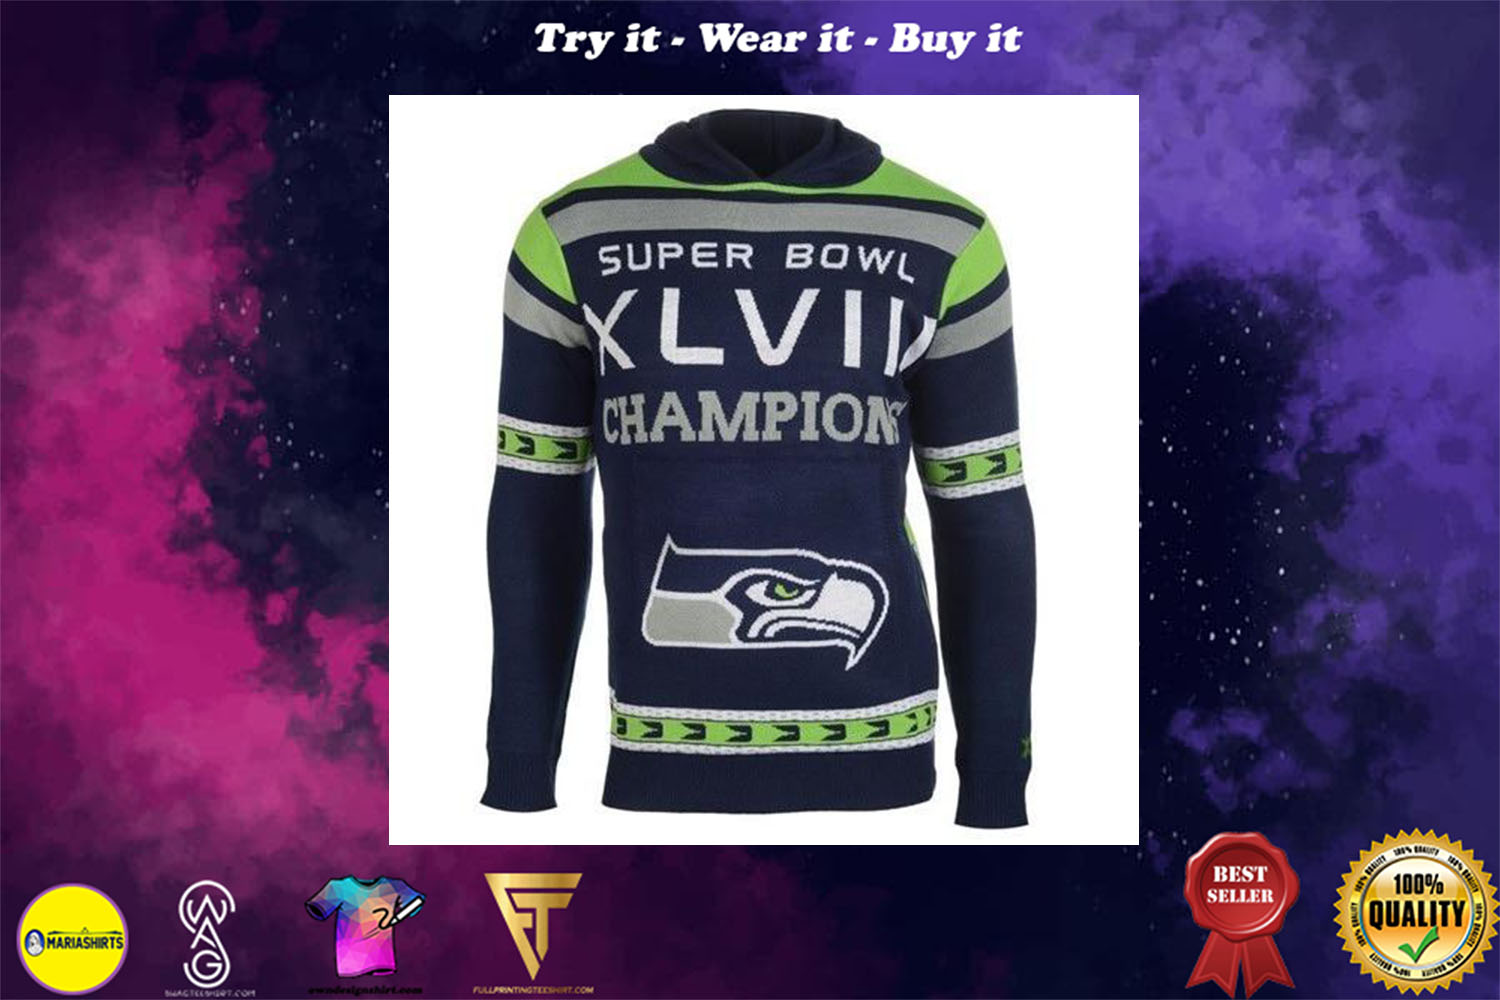 [special edition] the seattle seahawks super bowl champions full over print shirt - maria